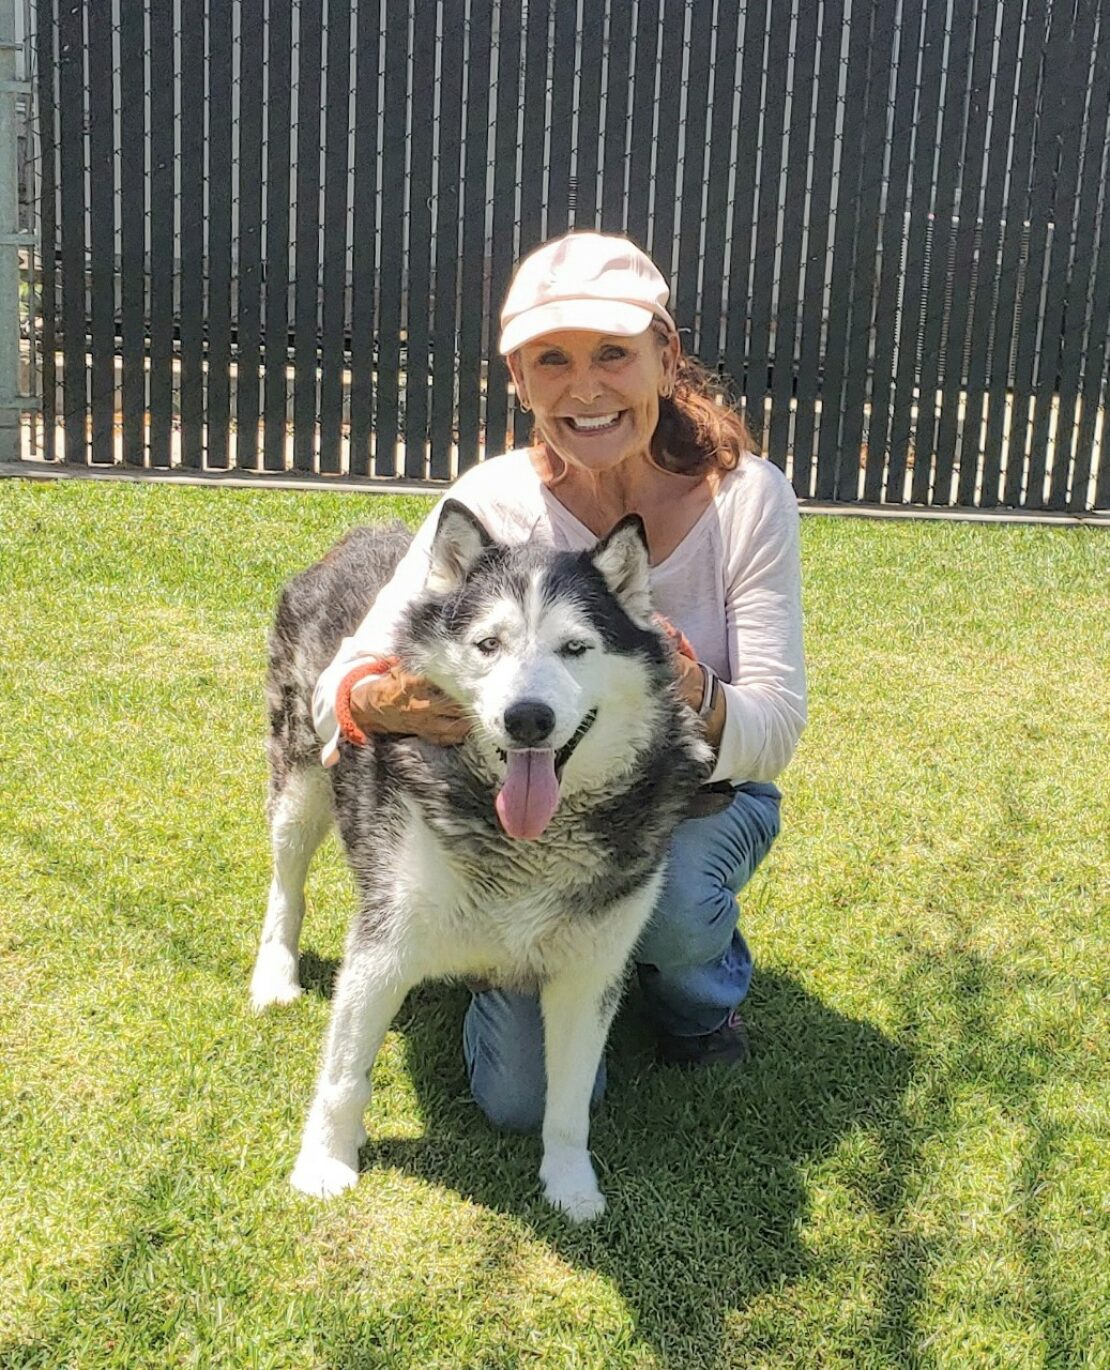 woman in pink cap and pink shirt squats on grass next to a husky with white legs and gray yead and body.